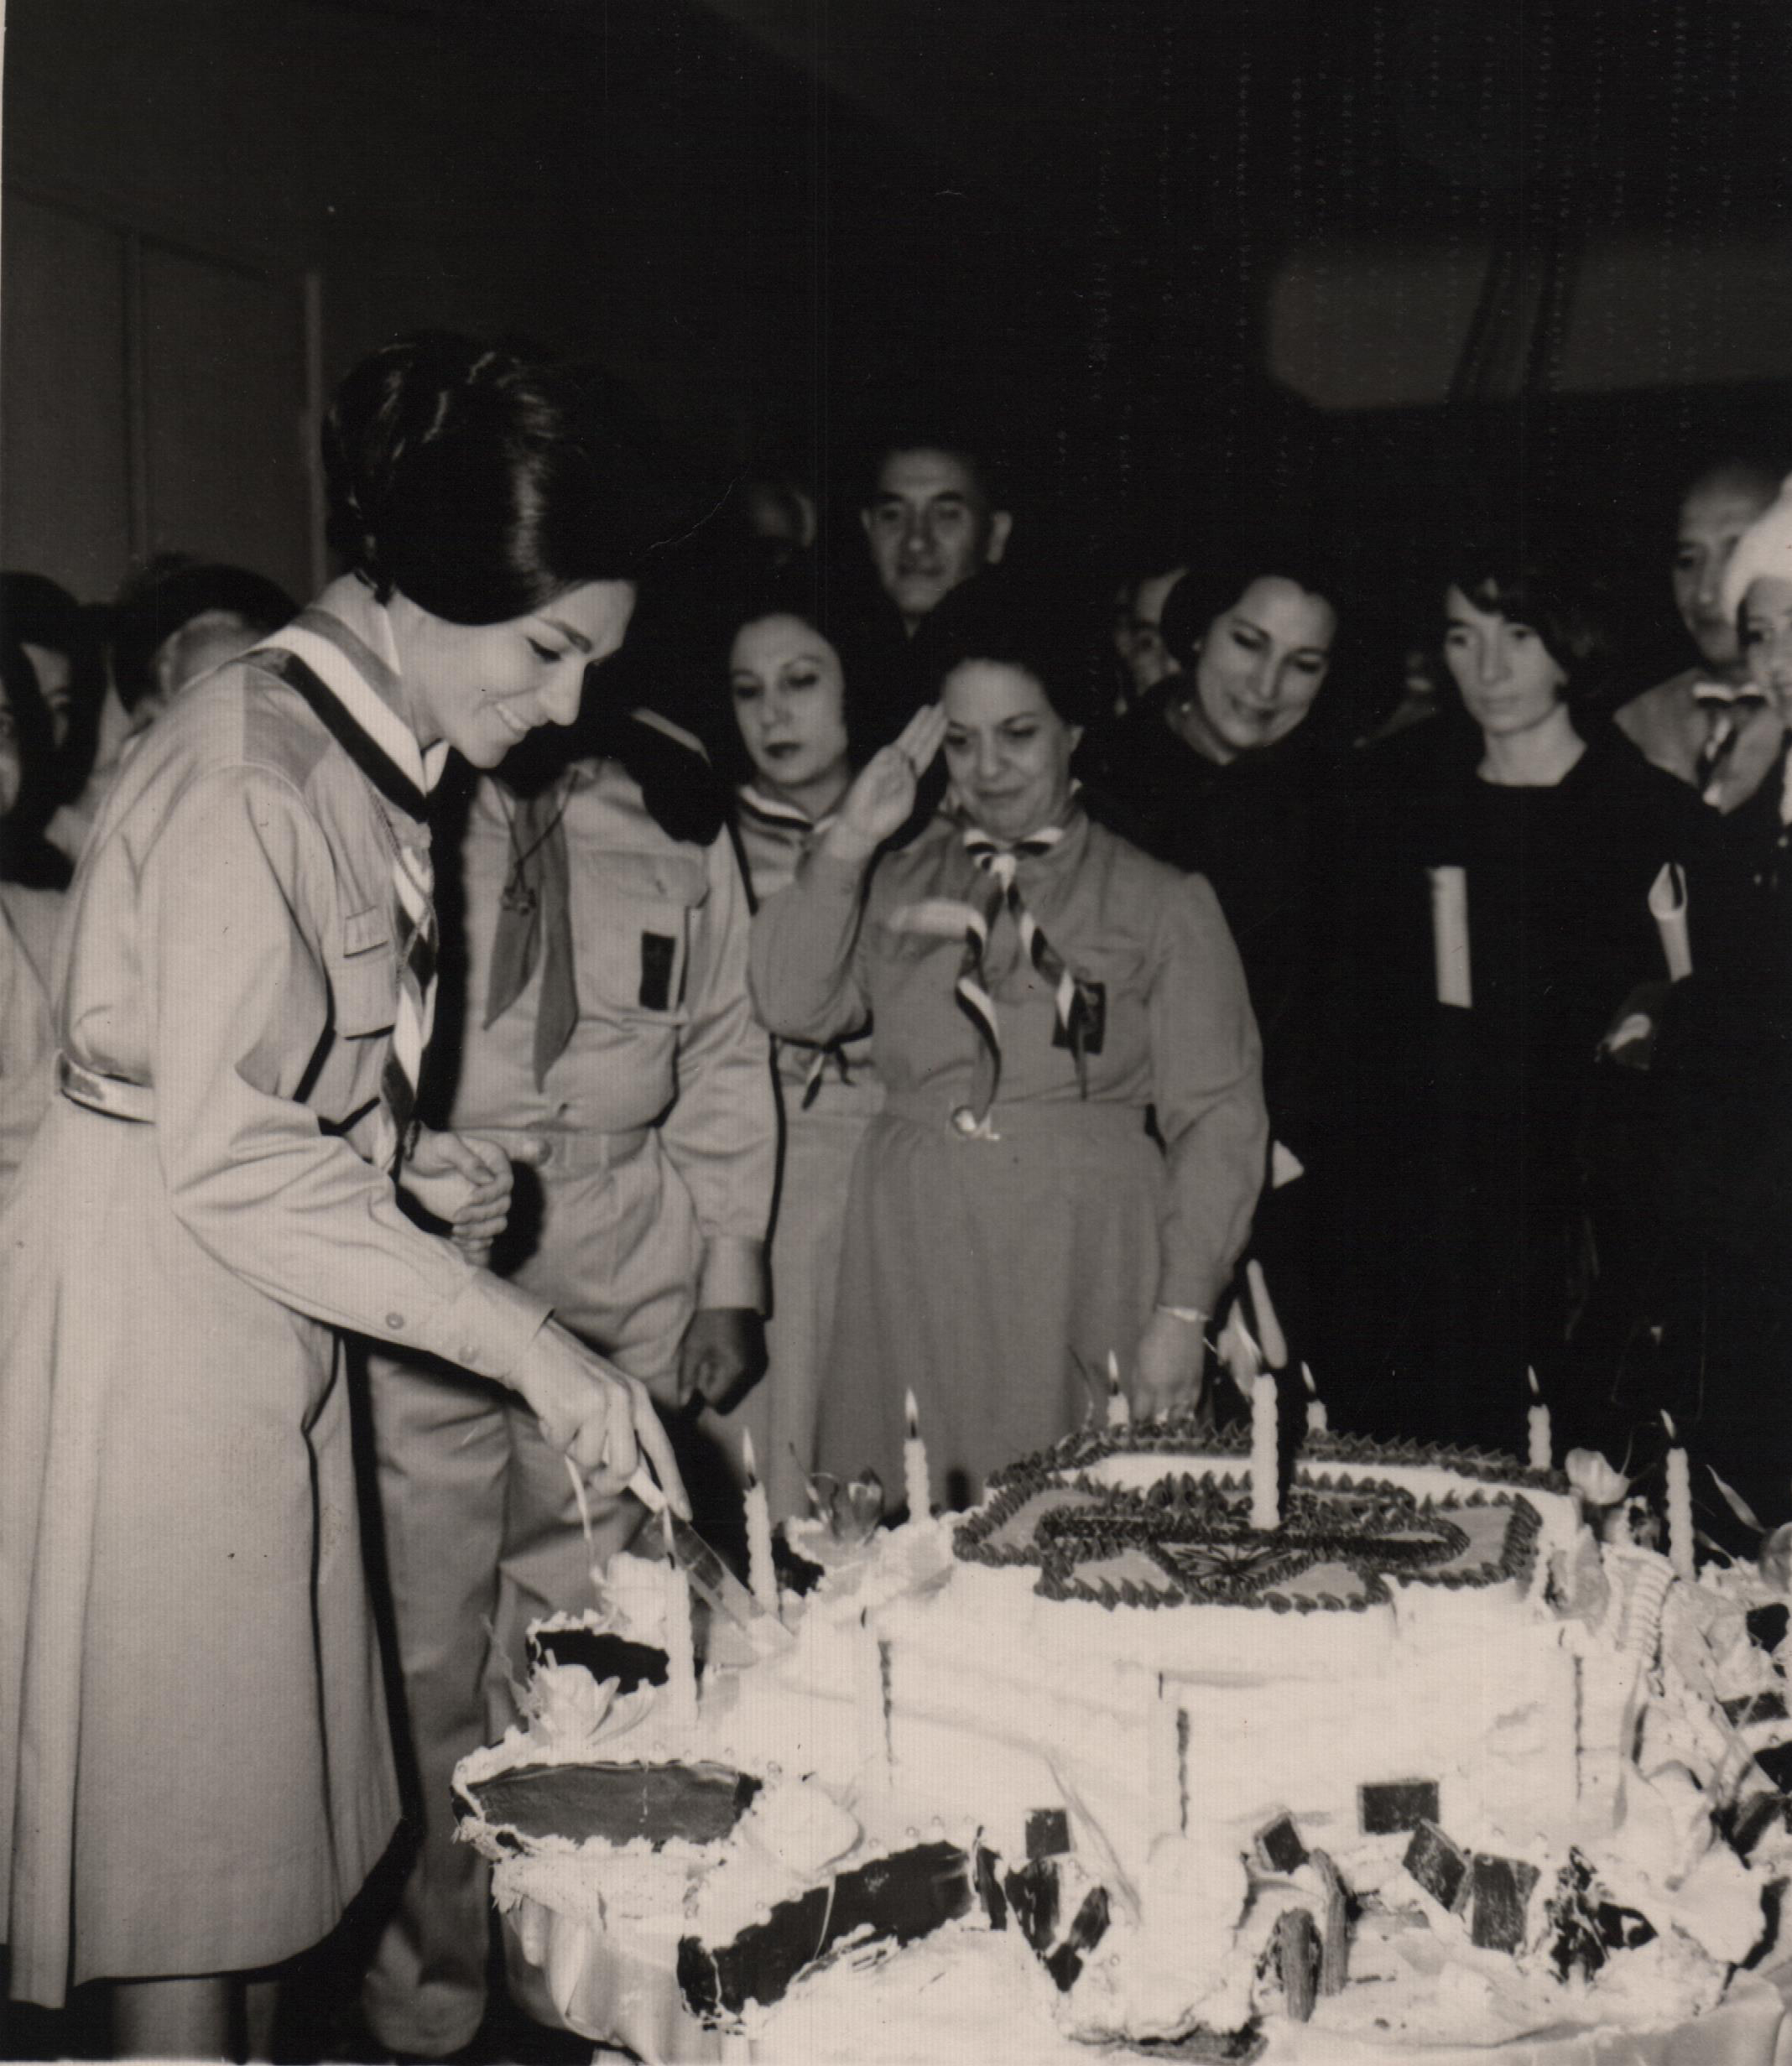 Queen of Iran Cutting a Mignon Cake in the Palace (1969)